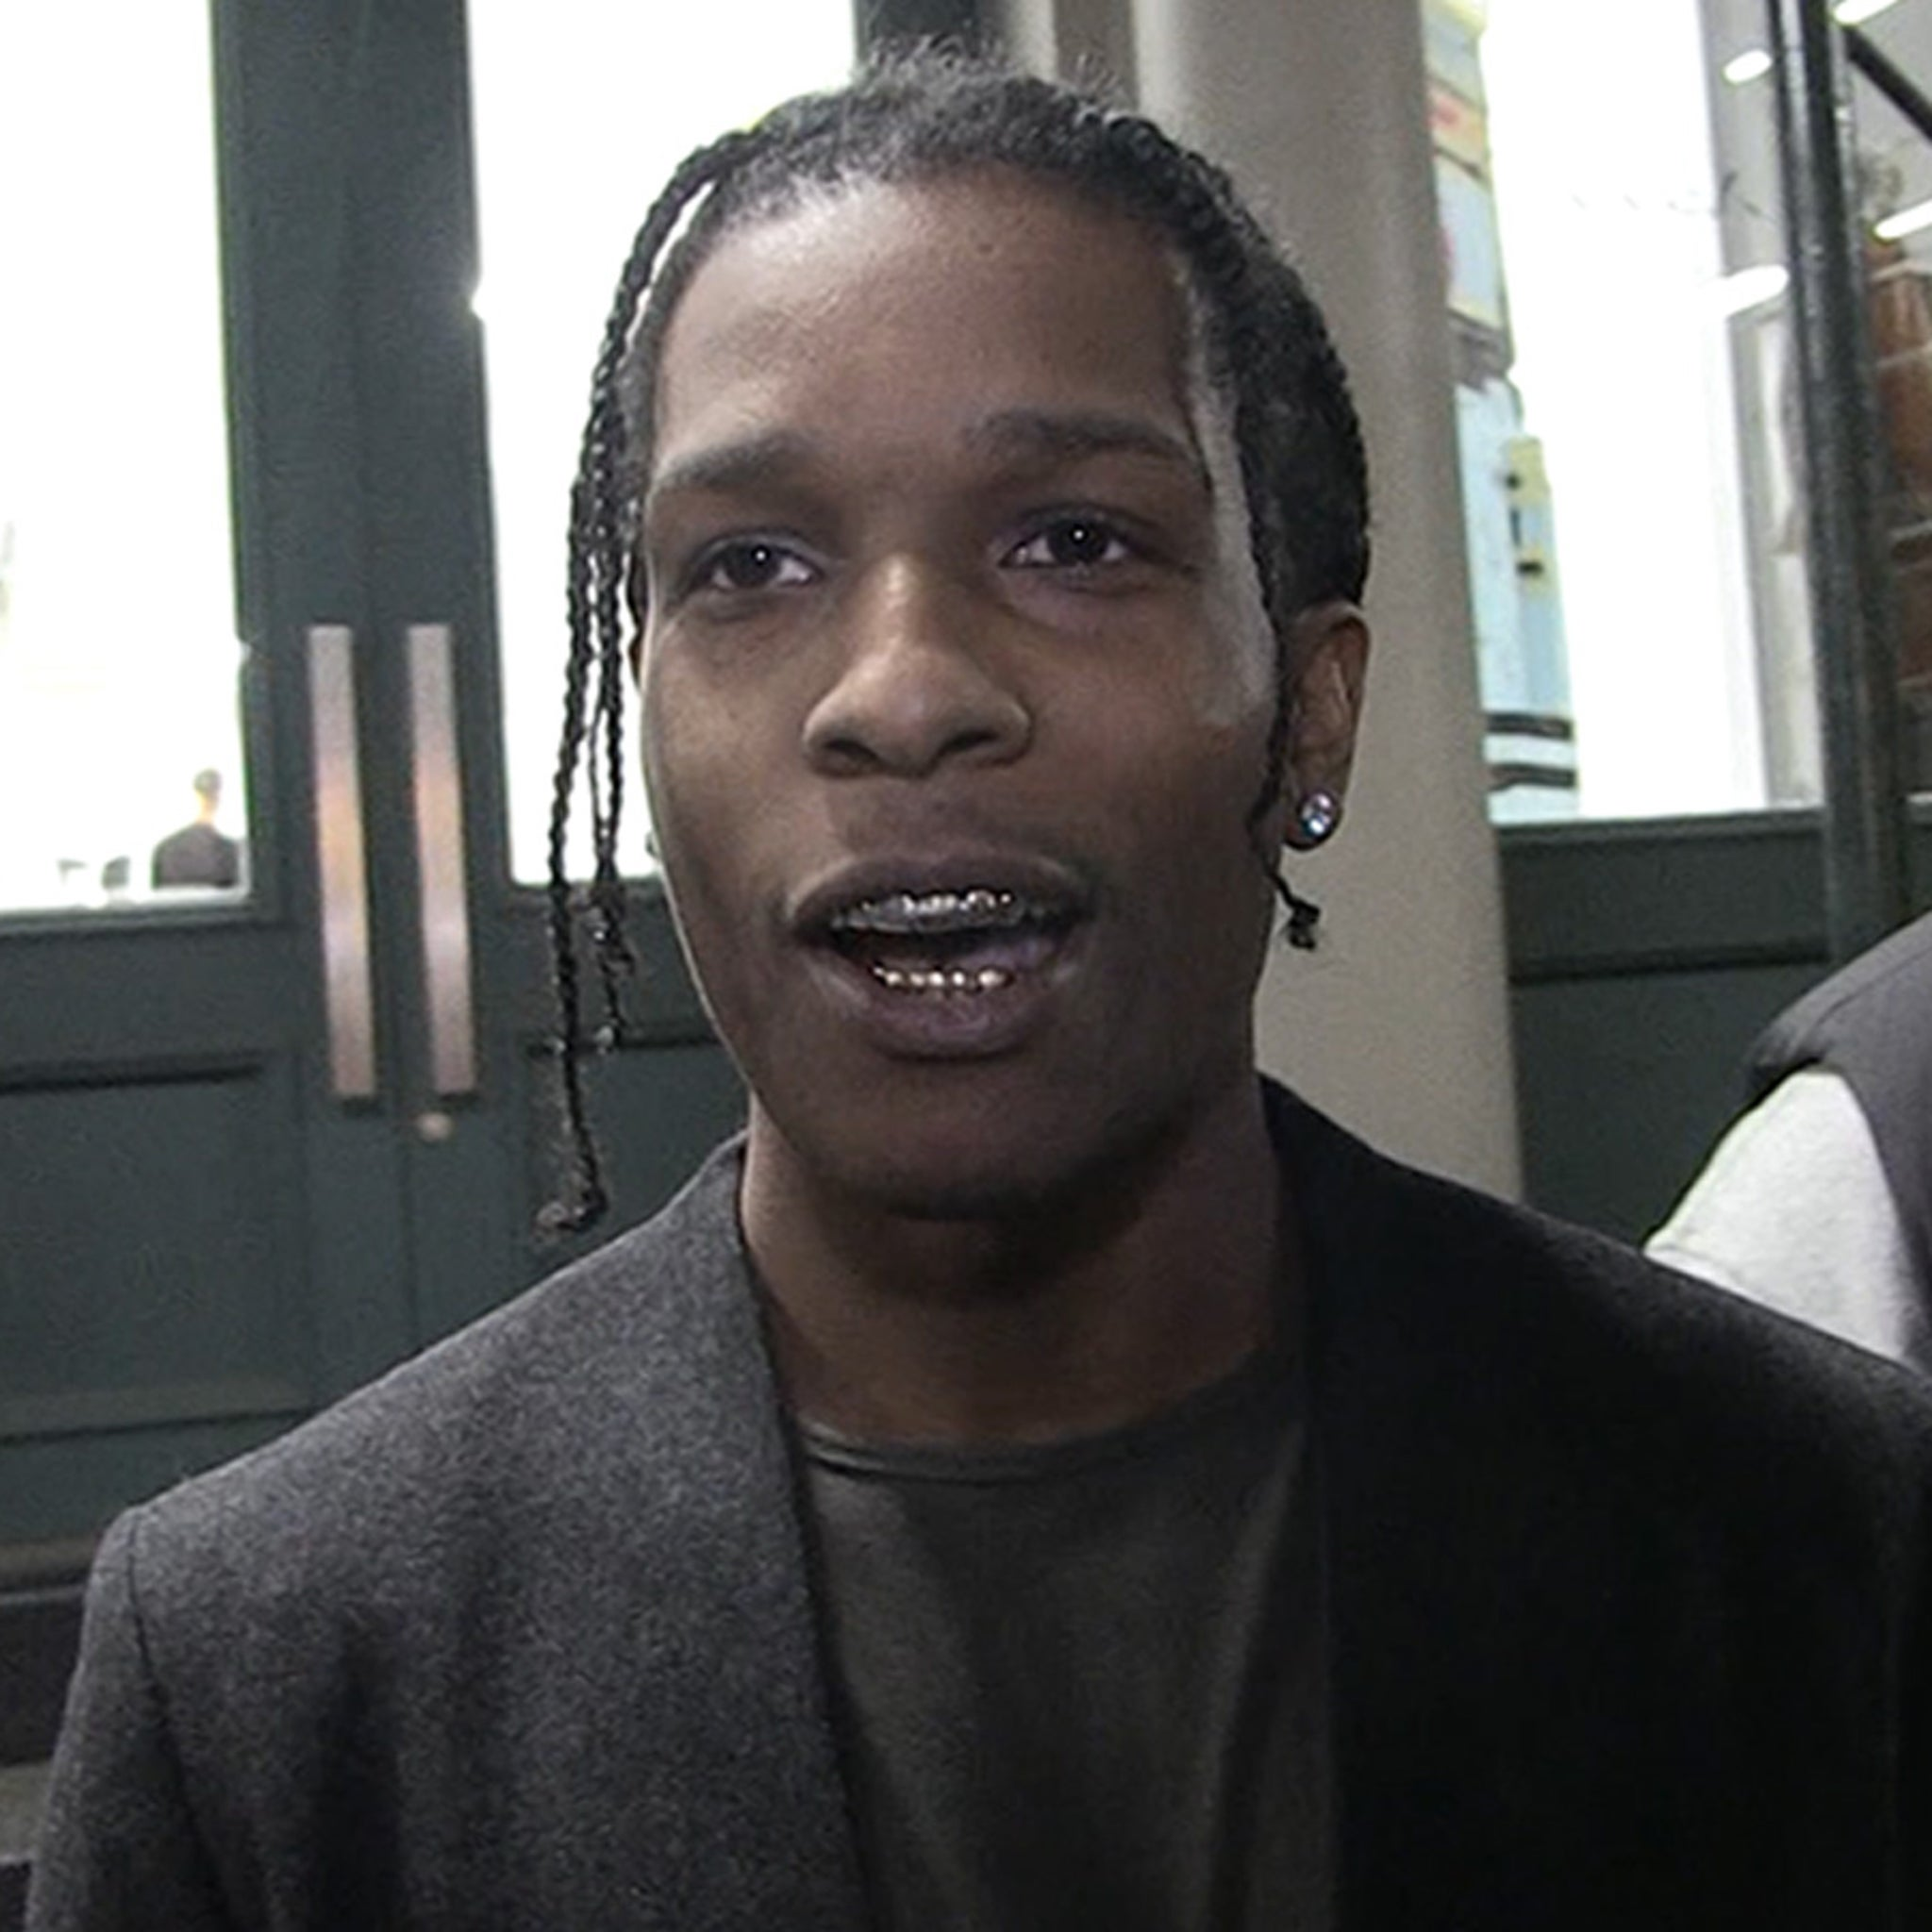 A$AP Rocky Says He's Going Back to Sweden to Help Immigrants, Mum on Trump